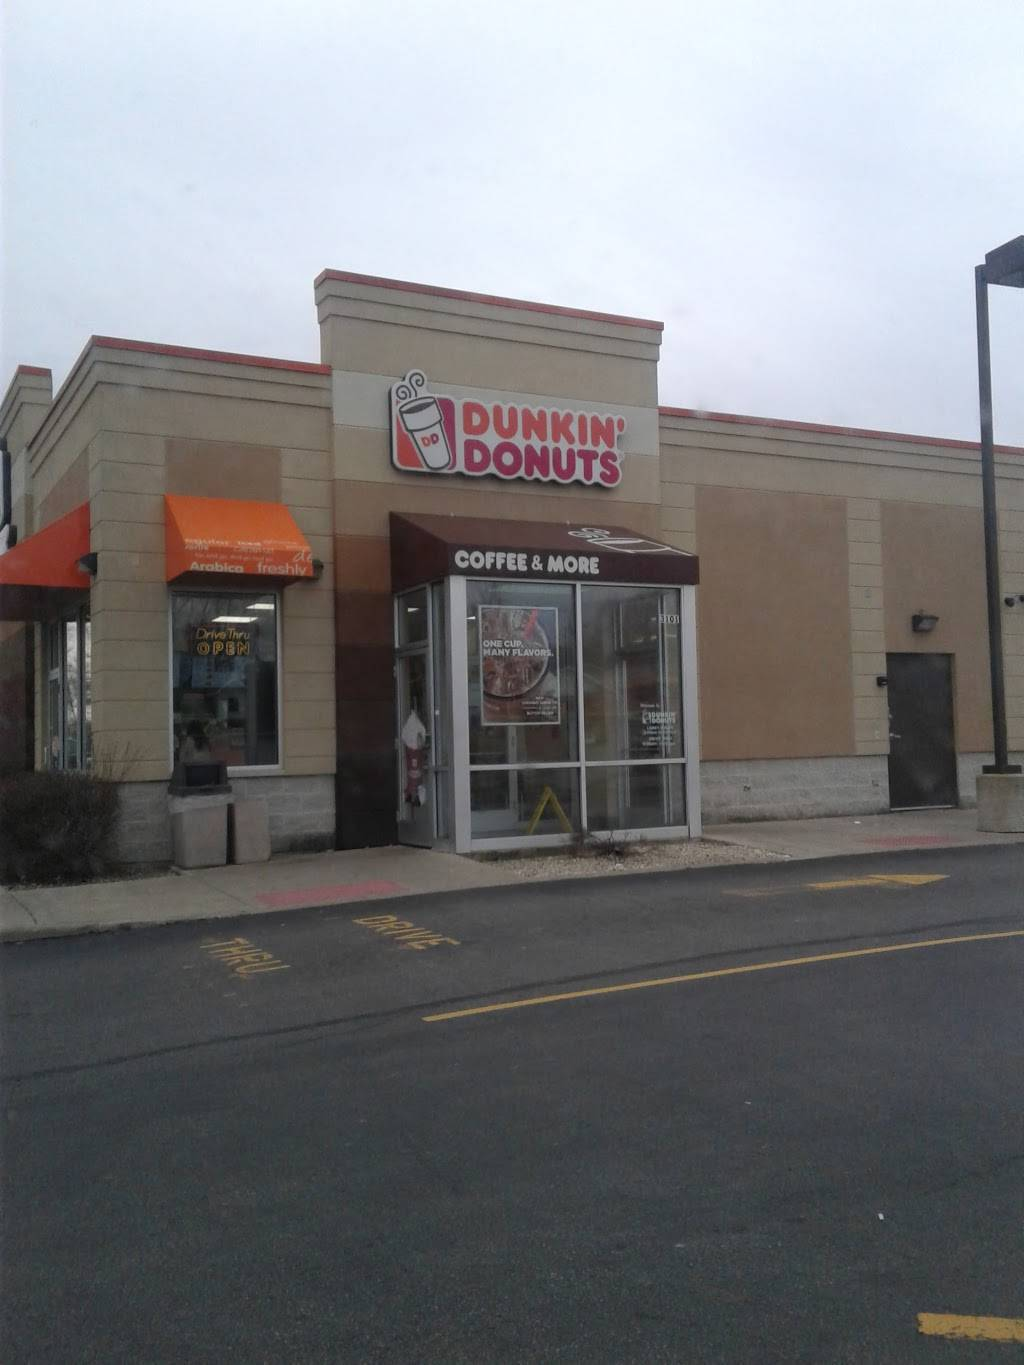 Dunkin Donuts | cafe | 3101 147th St, Posen, IL 60469, USA | 7083719150 OR +1 708-371-9150